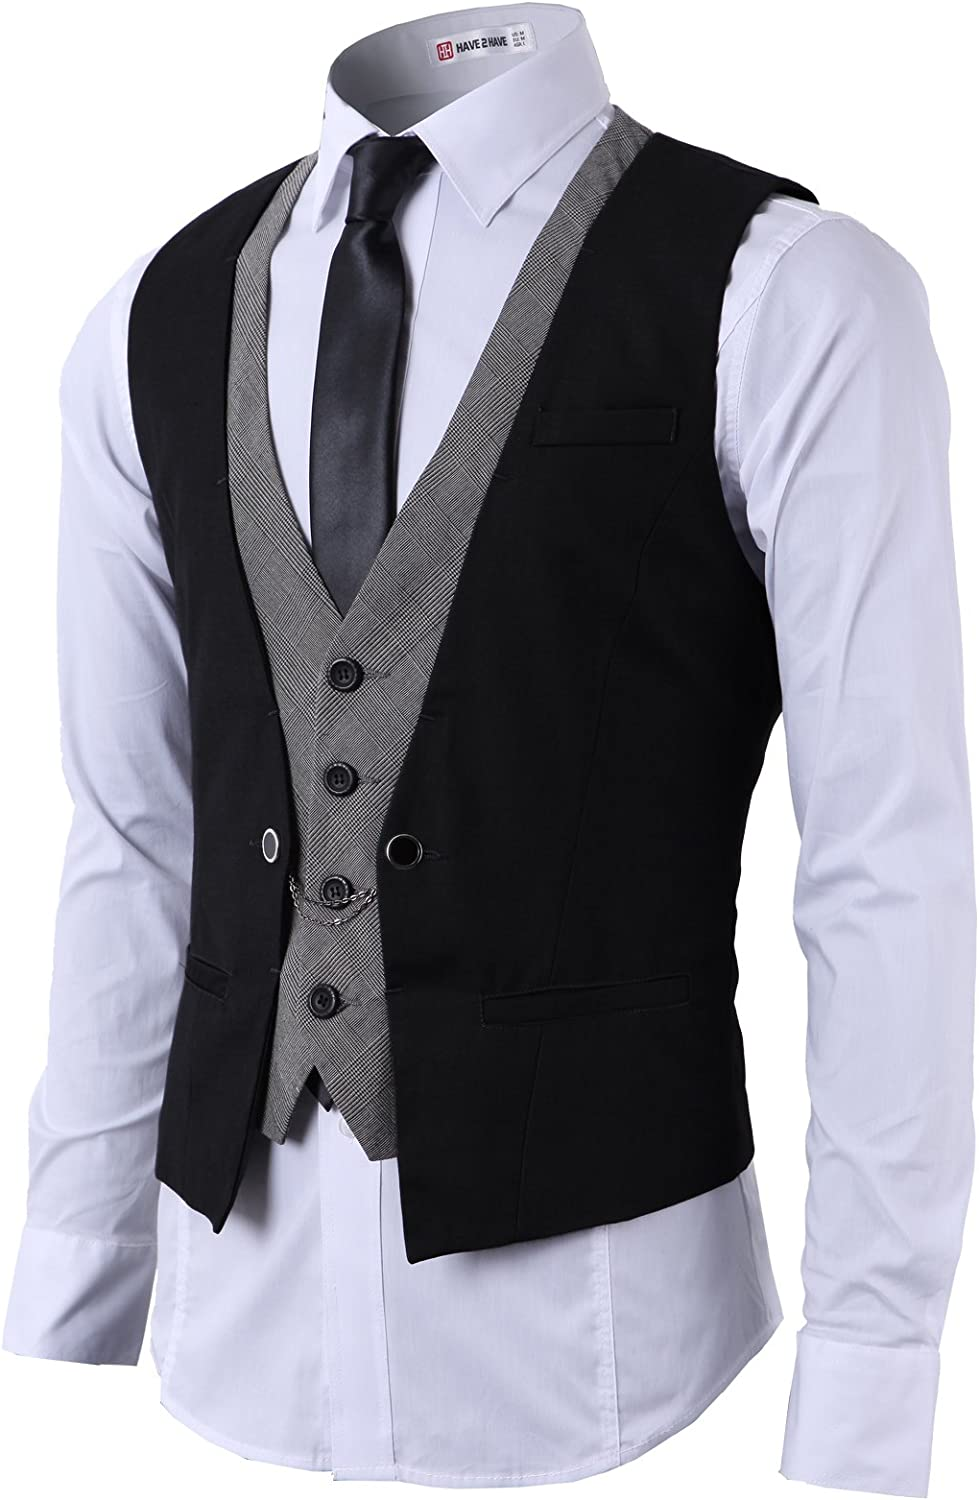 H2H Mens Dress Slim Fit Vests Premium Business Dress Suit Vests Button Closure